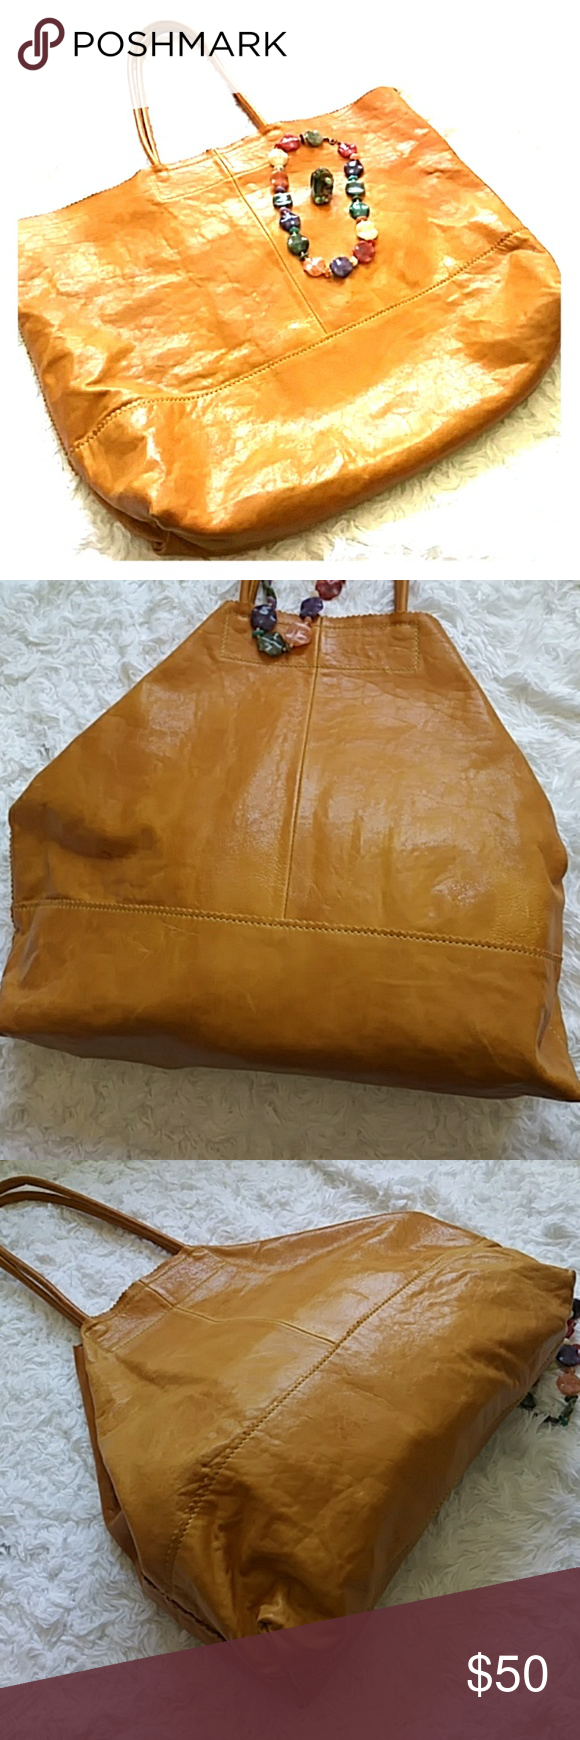 Banana Republic yellow leather purse Beautiful mustard yellow extra large leather tote in good condition Banana Republic Bags Totes